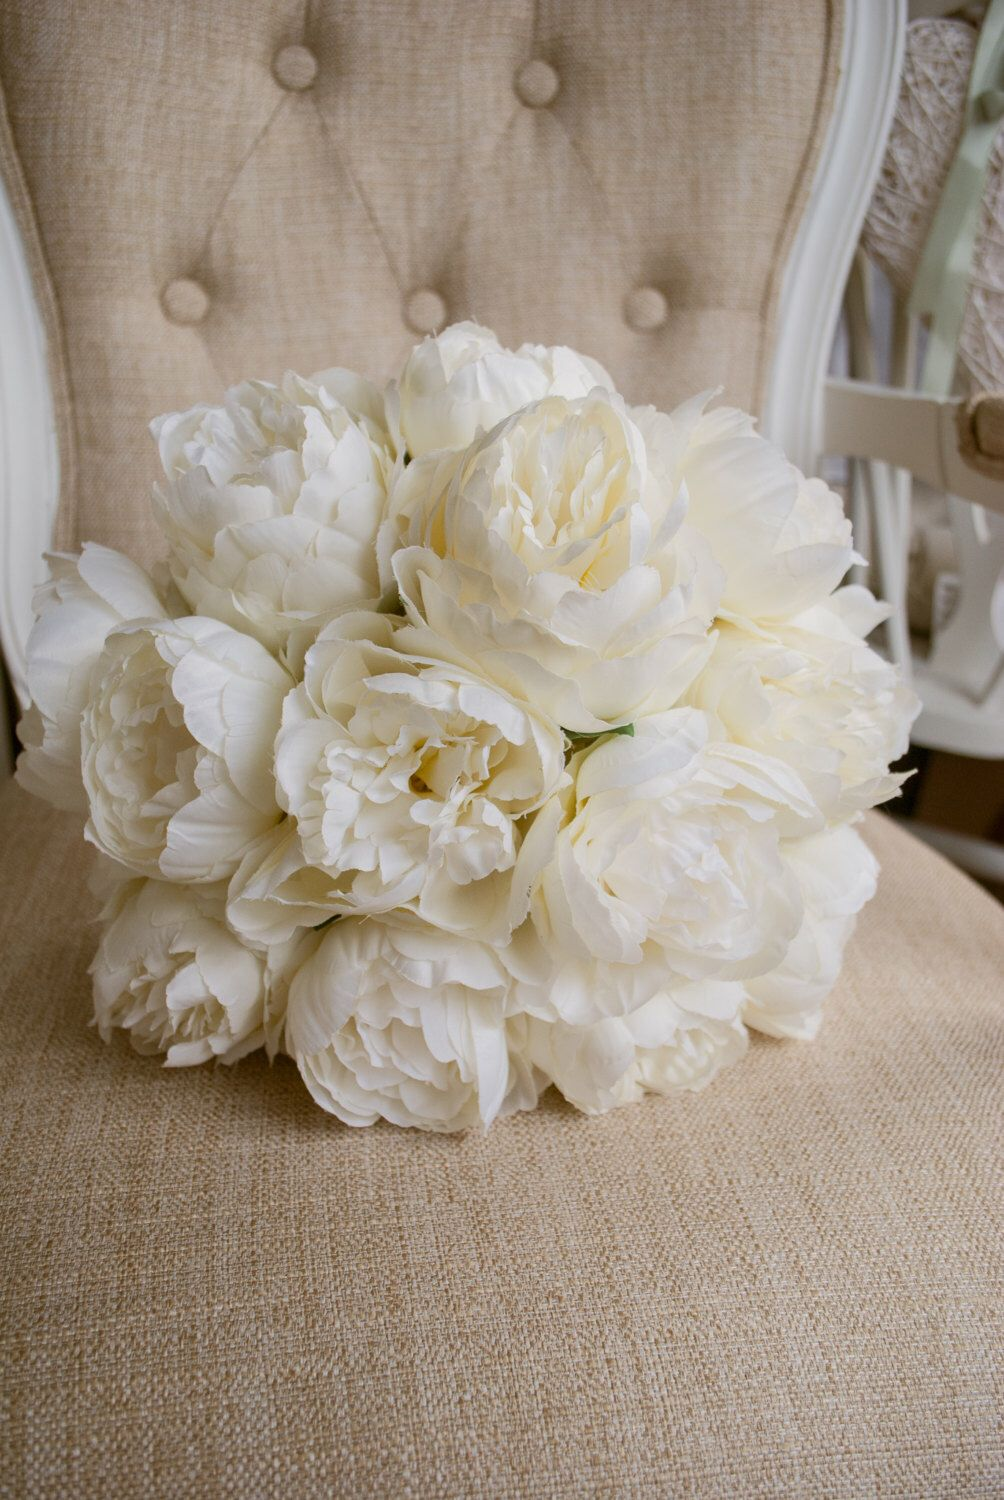 Luxury ivory peony wedding bouquet made with artificial peonies white peony bouquet silk flowers laurel weddings from my etsy shop httpsetsyuklisting263812774luxury ivory peony wedding bouquet made izmirmasajfo